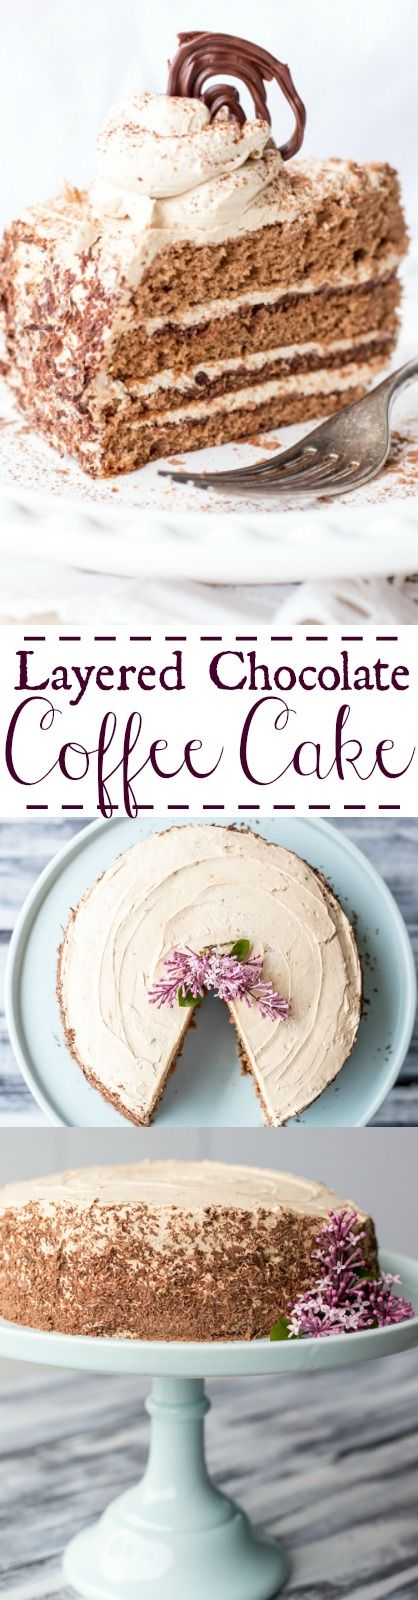 Layered Chocolate Coffee Cake. ValentinasCorner.com